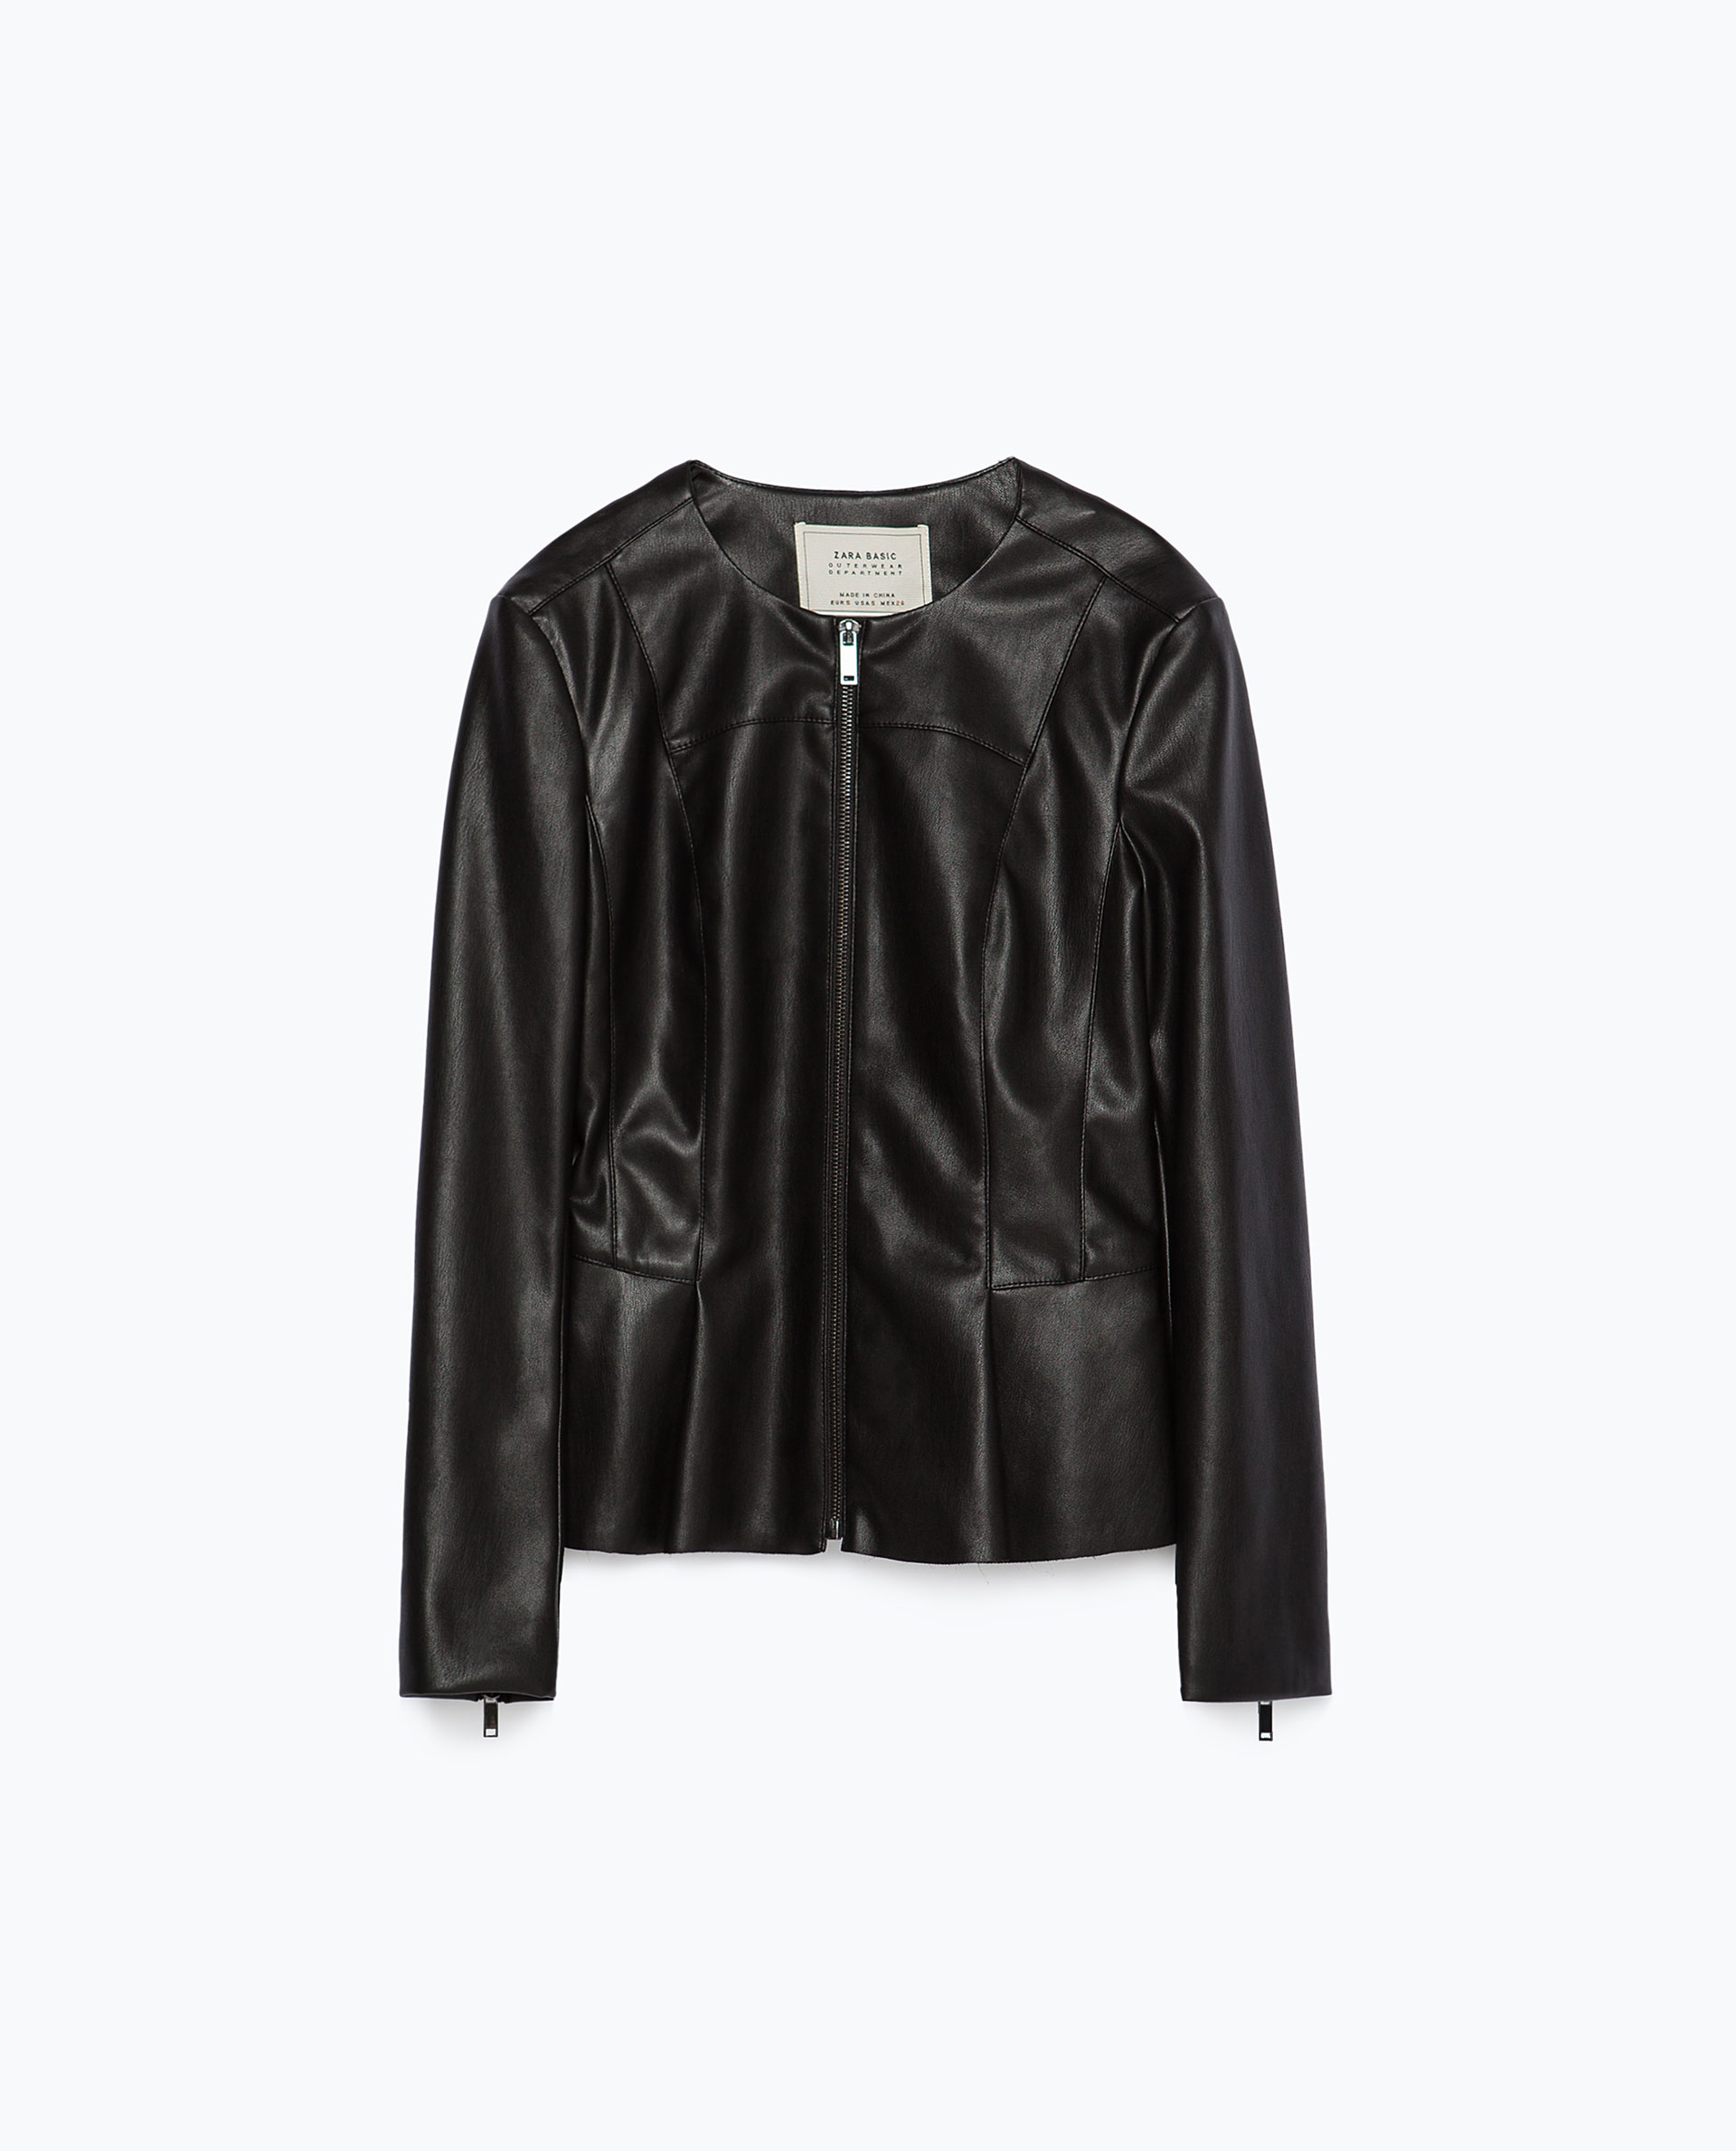 Zara black leather jacket